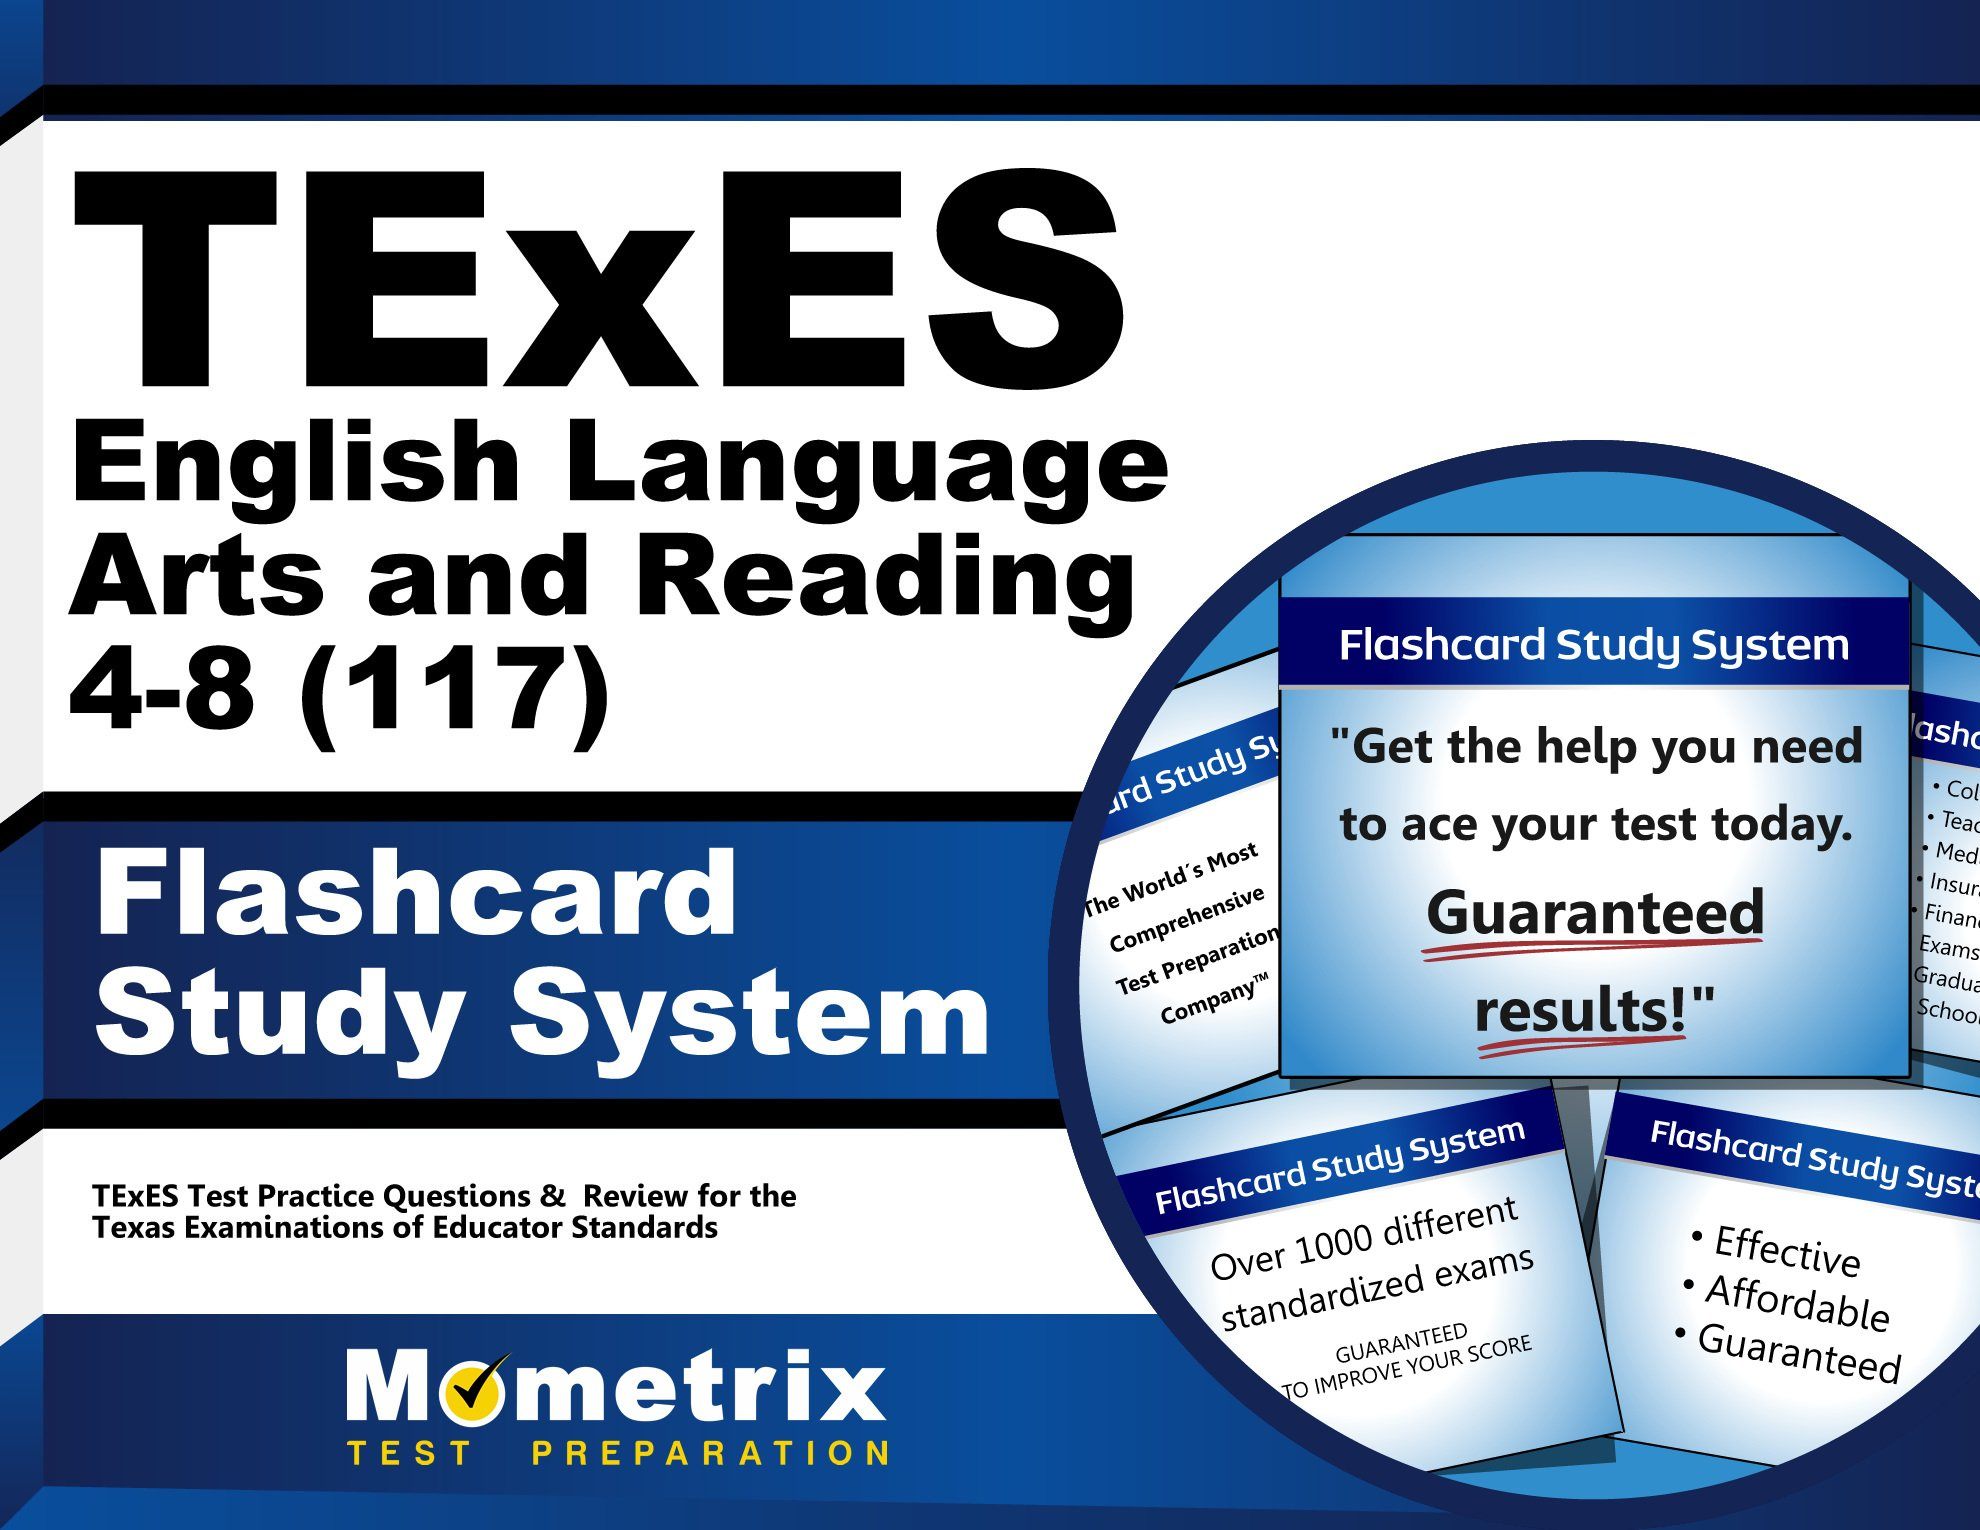 TExES English Language Arts and Reading 4-8 (117) Flashcard Study System: TExES Test Practice Questions & Review for the Texas Examinations of Educator Standards (Cards)